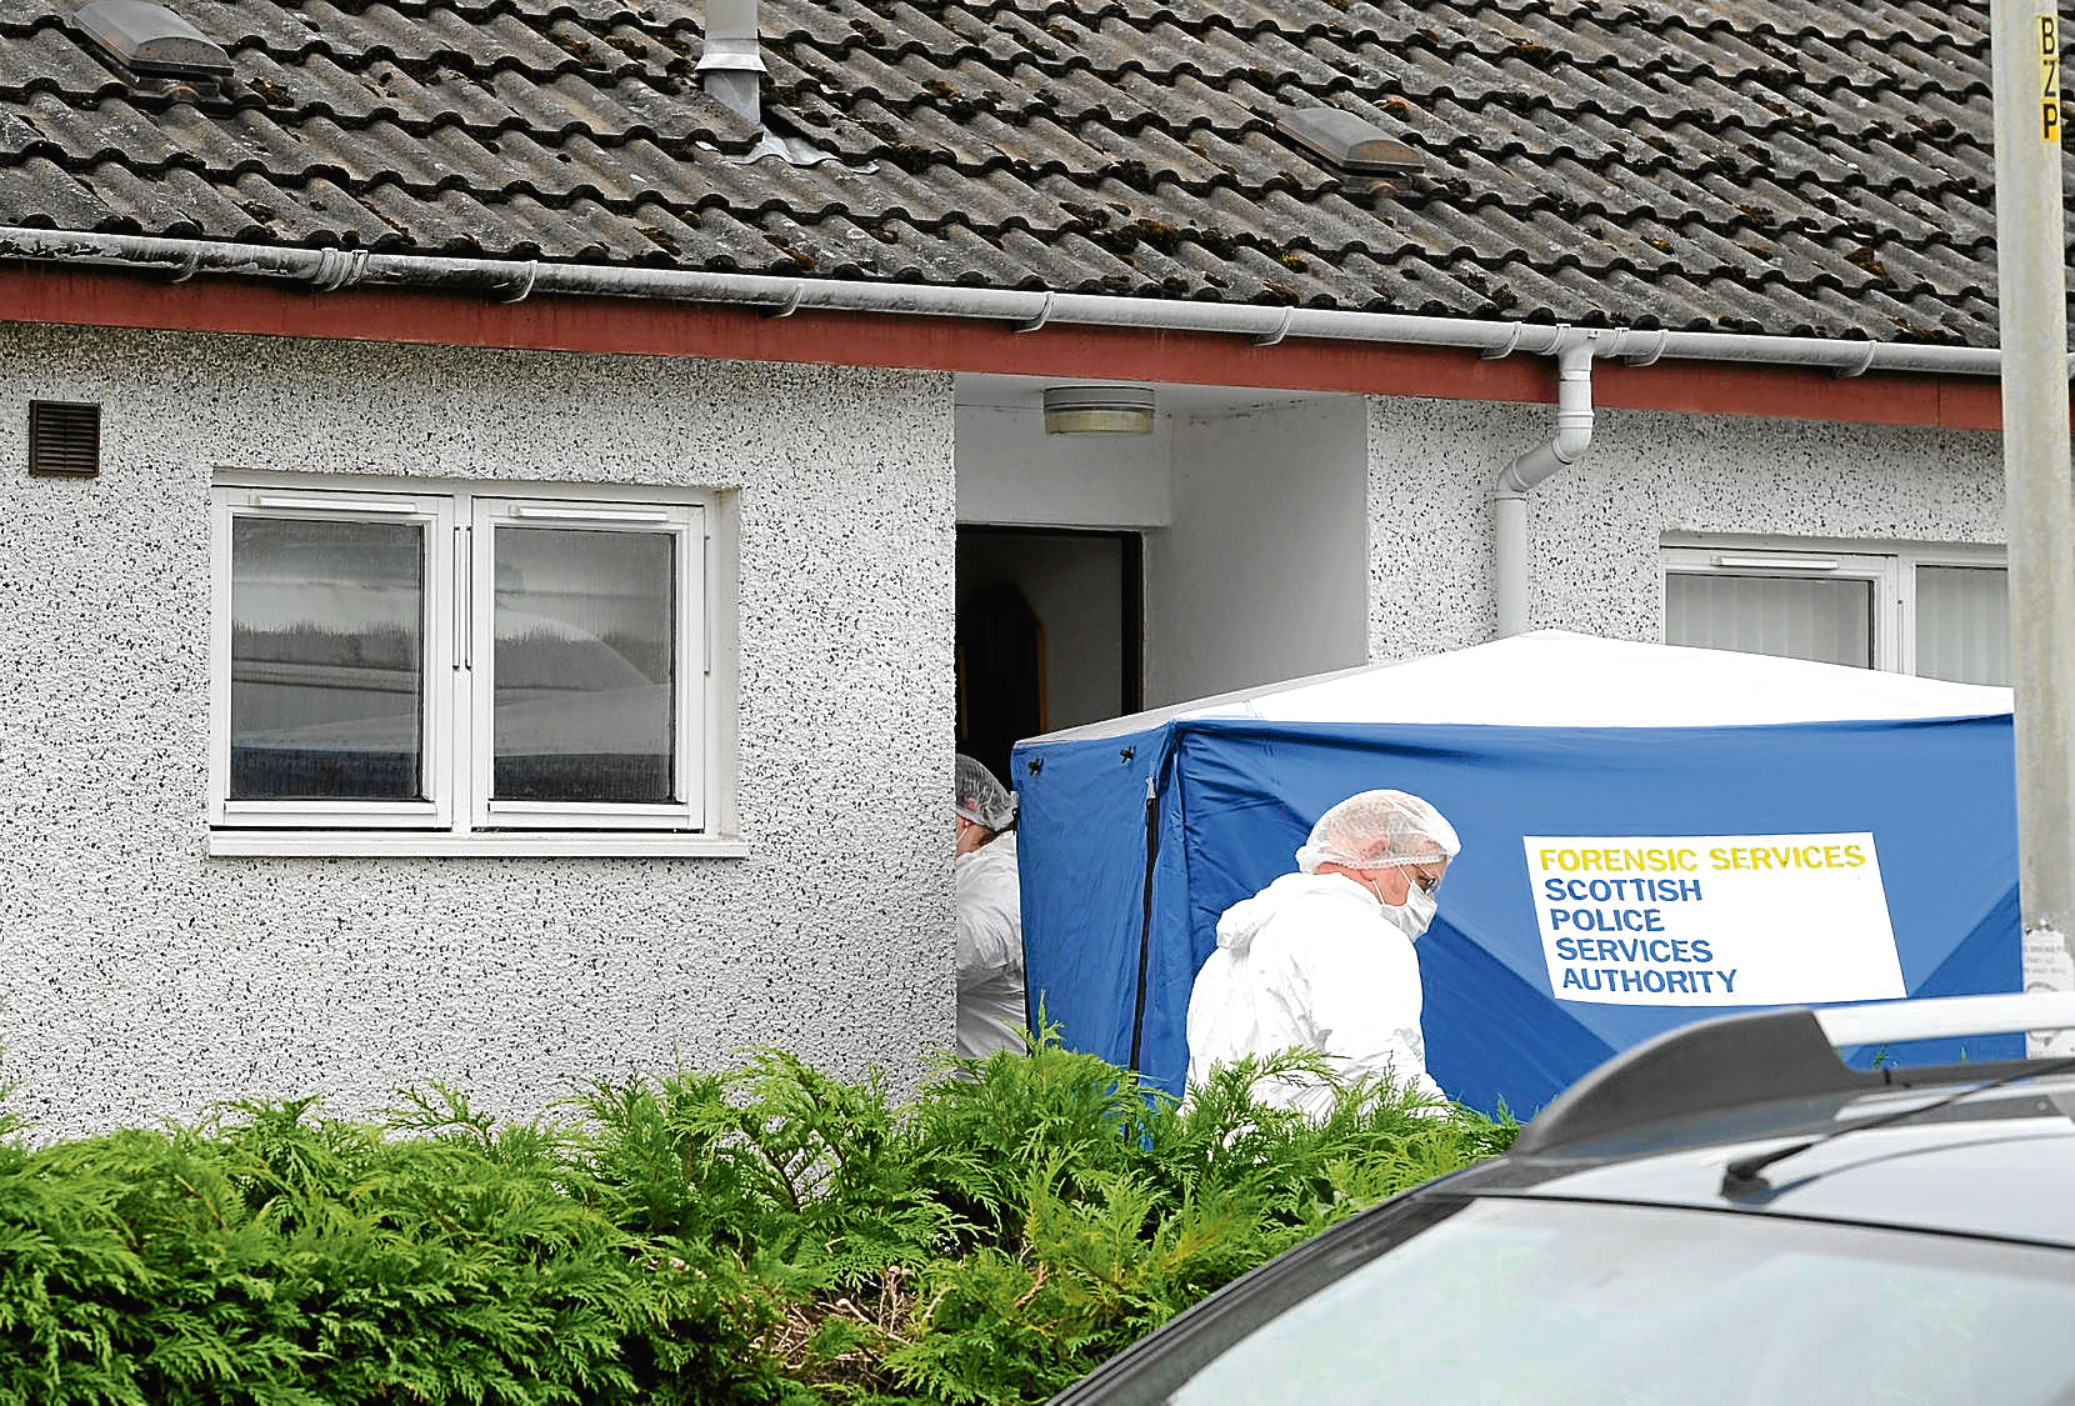 Police and their forensic officers at the scene last night of the 'unexplained death' of Murdo Mackinnon in Kintail Crescent, Inverness. Pic by Sandy McCook.